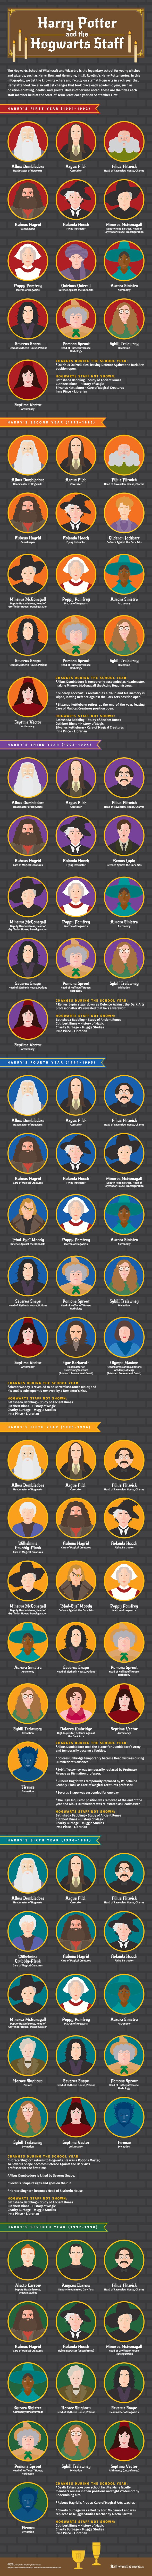 Harry-Potter-Hogwarts-Staff-Infographic